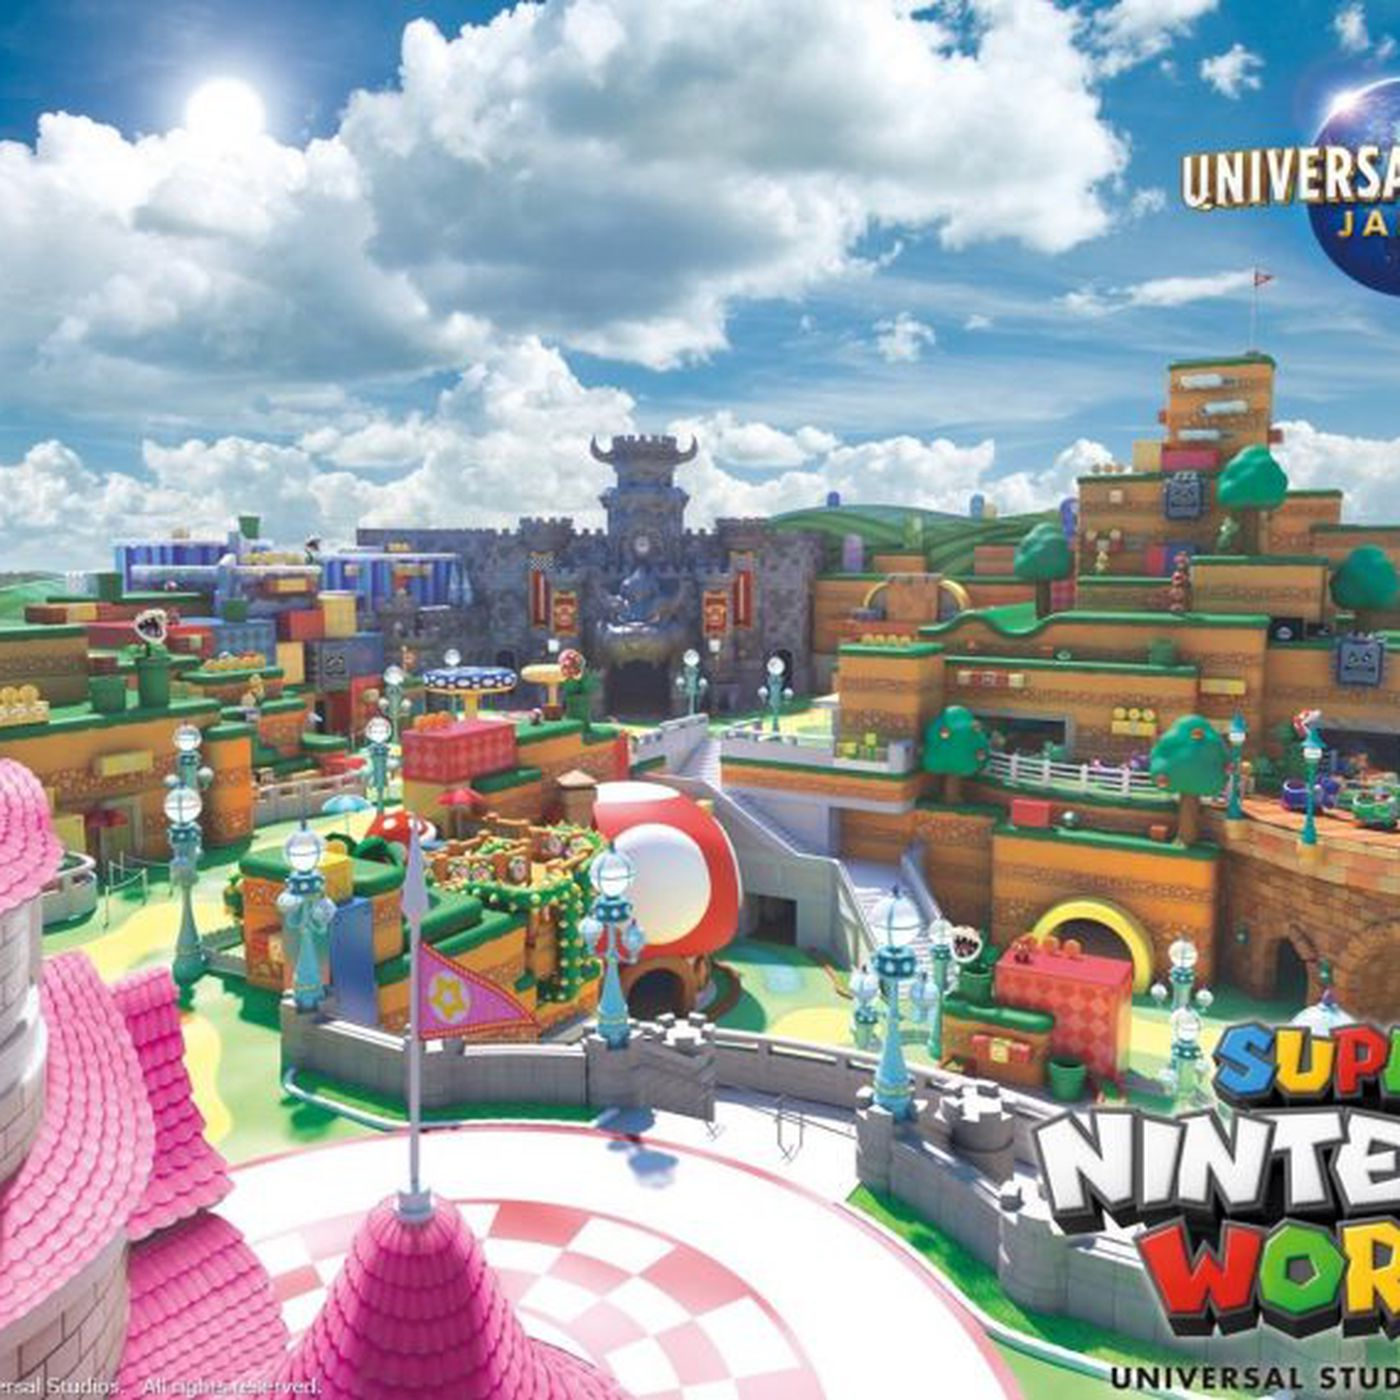 Japan S Super Nintendo World Theme Park Will Feature Smart Mario Themed Wristbands The Verge